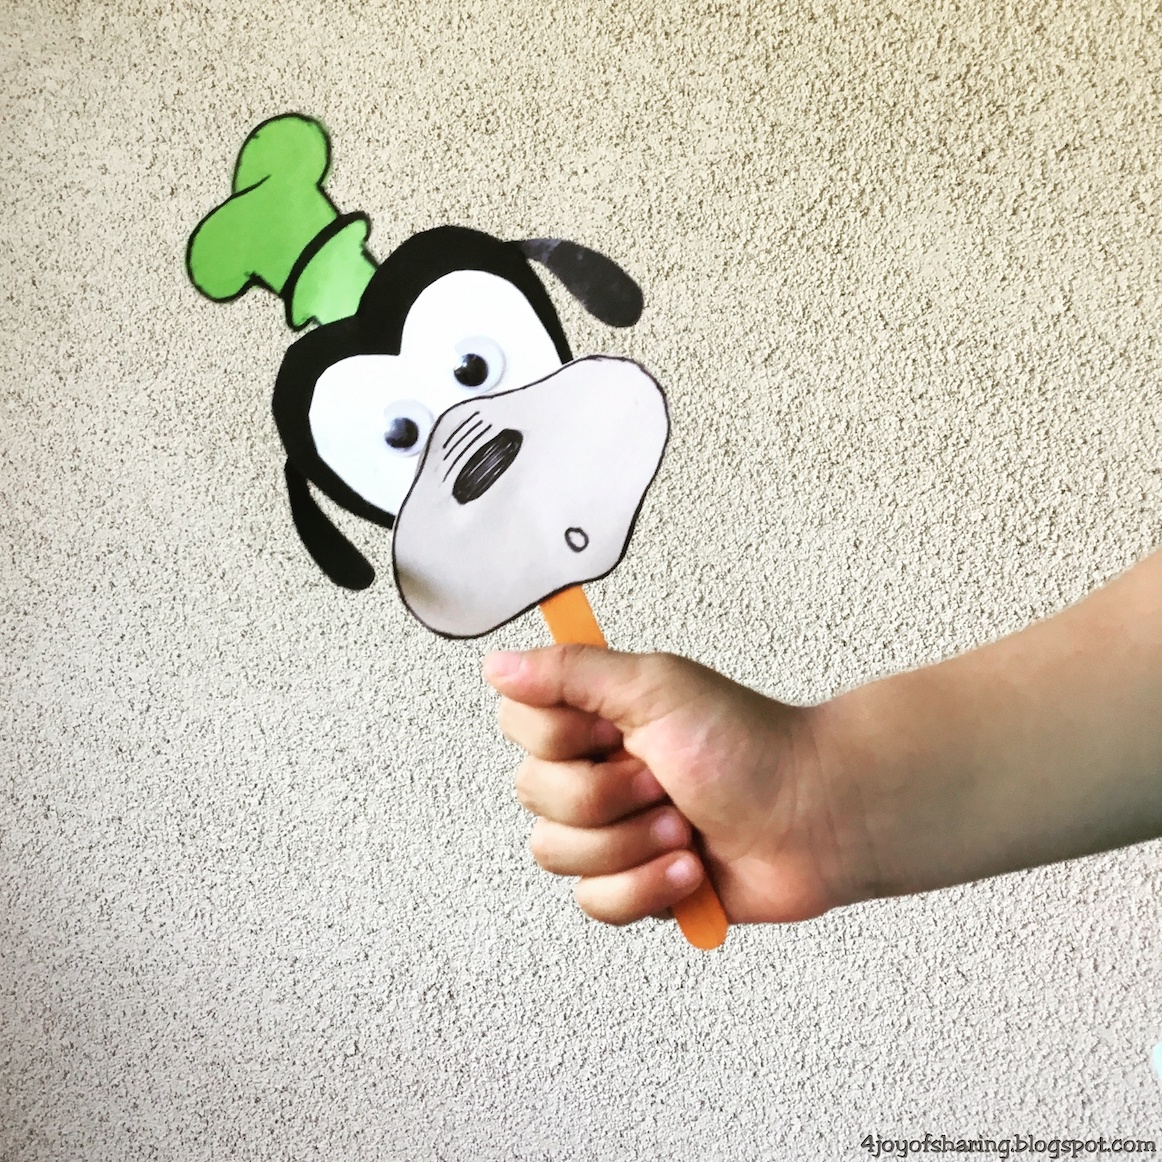 Kids Craft, Craft for kids, goofy, puppet, preschool craft, kindergarten craft, disney characters, popsicle stick craft, paper craft, summer craft, kids activities, kids art, art and craft for kids, mickey mouse